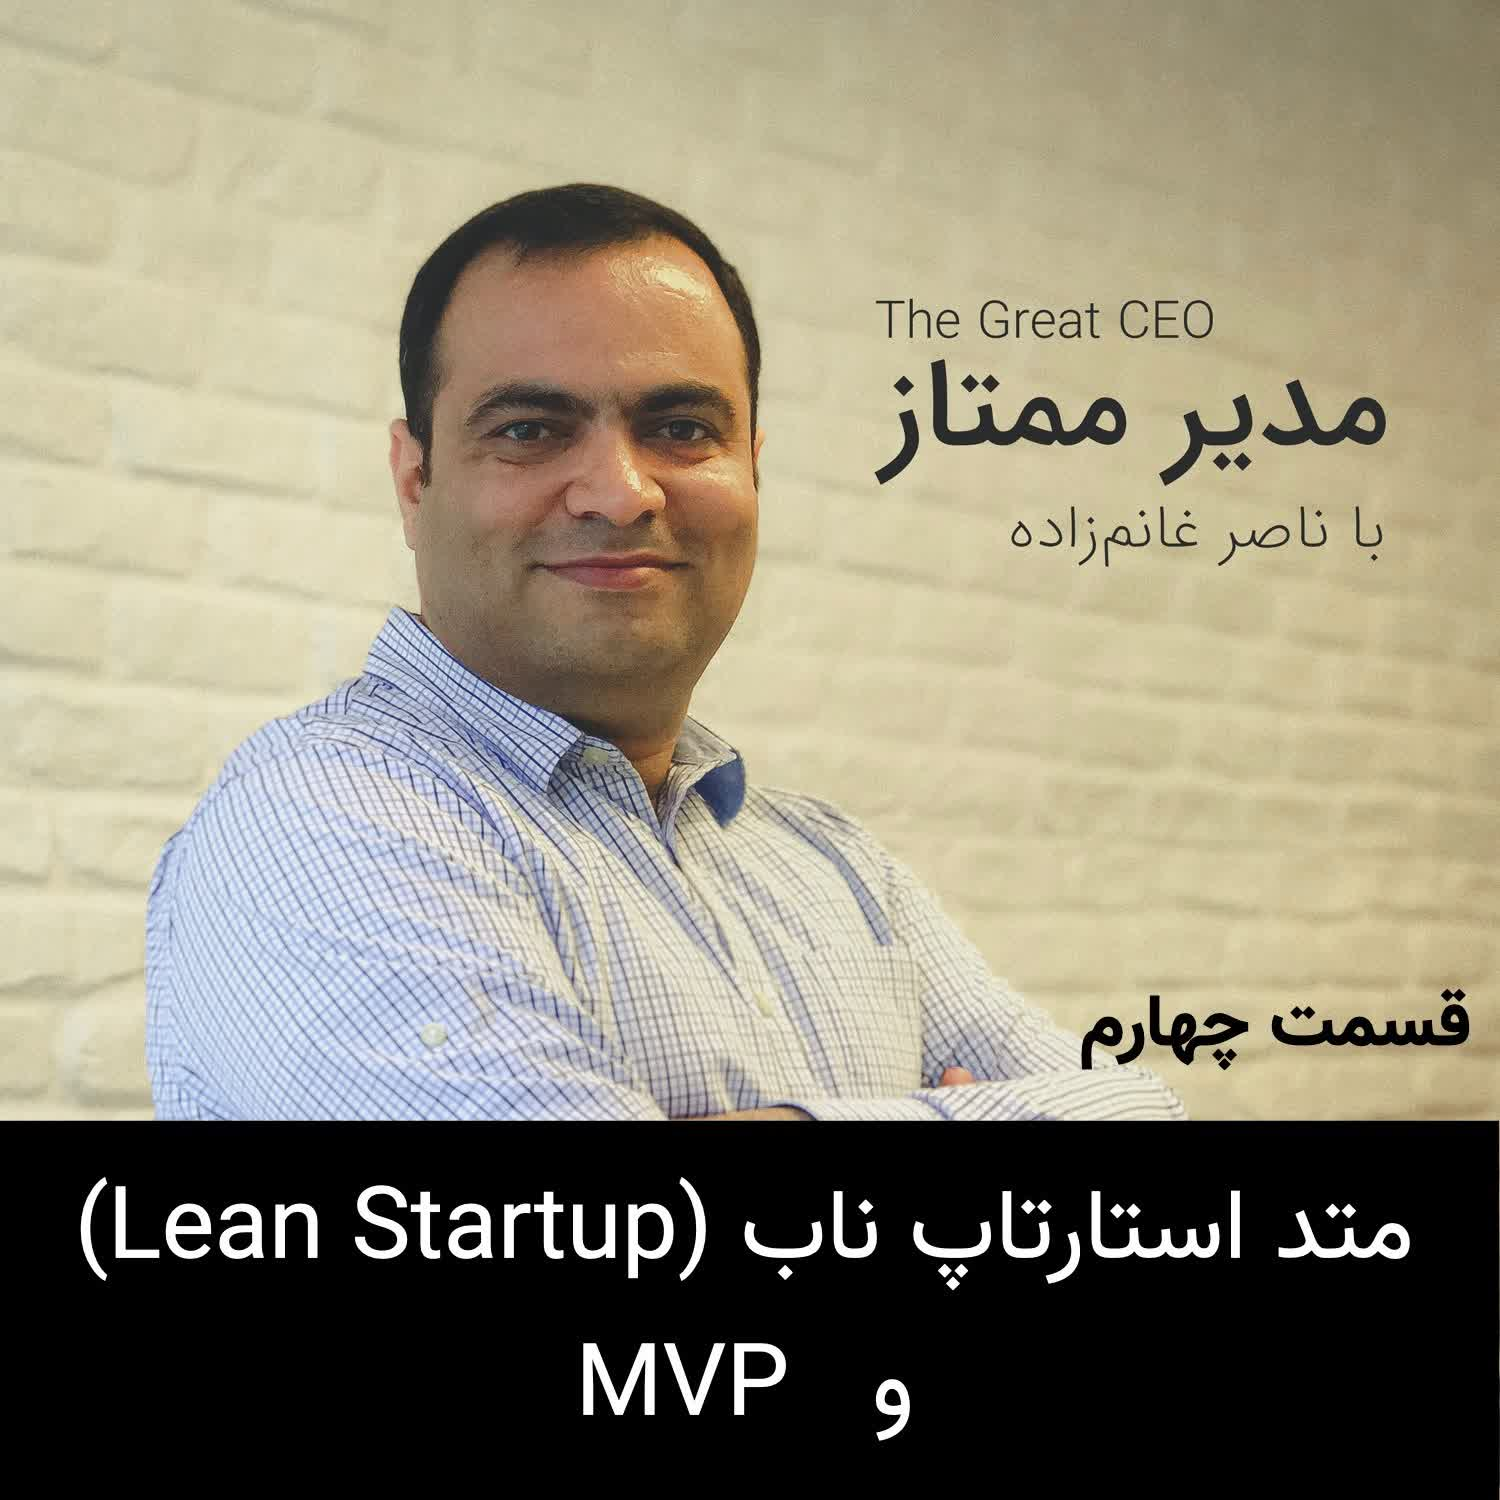 The Great CEO- E04- The Lean Startup & MVP